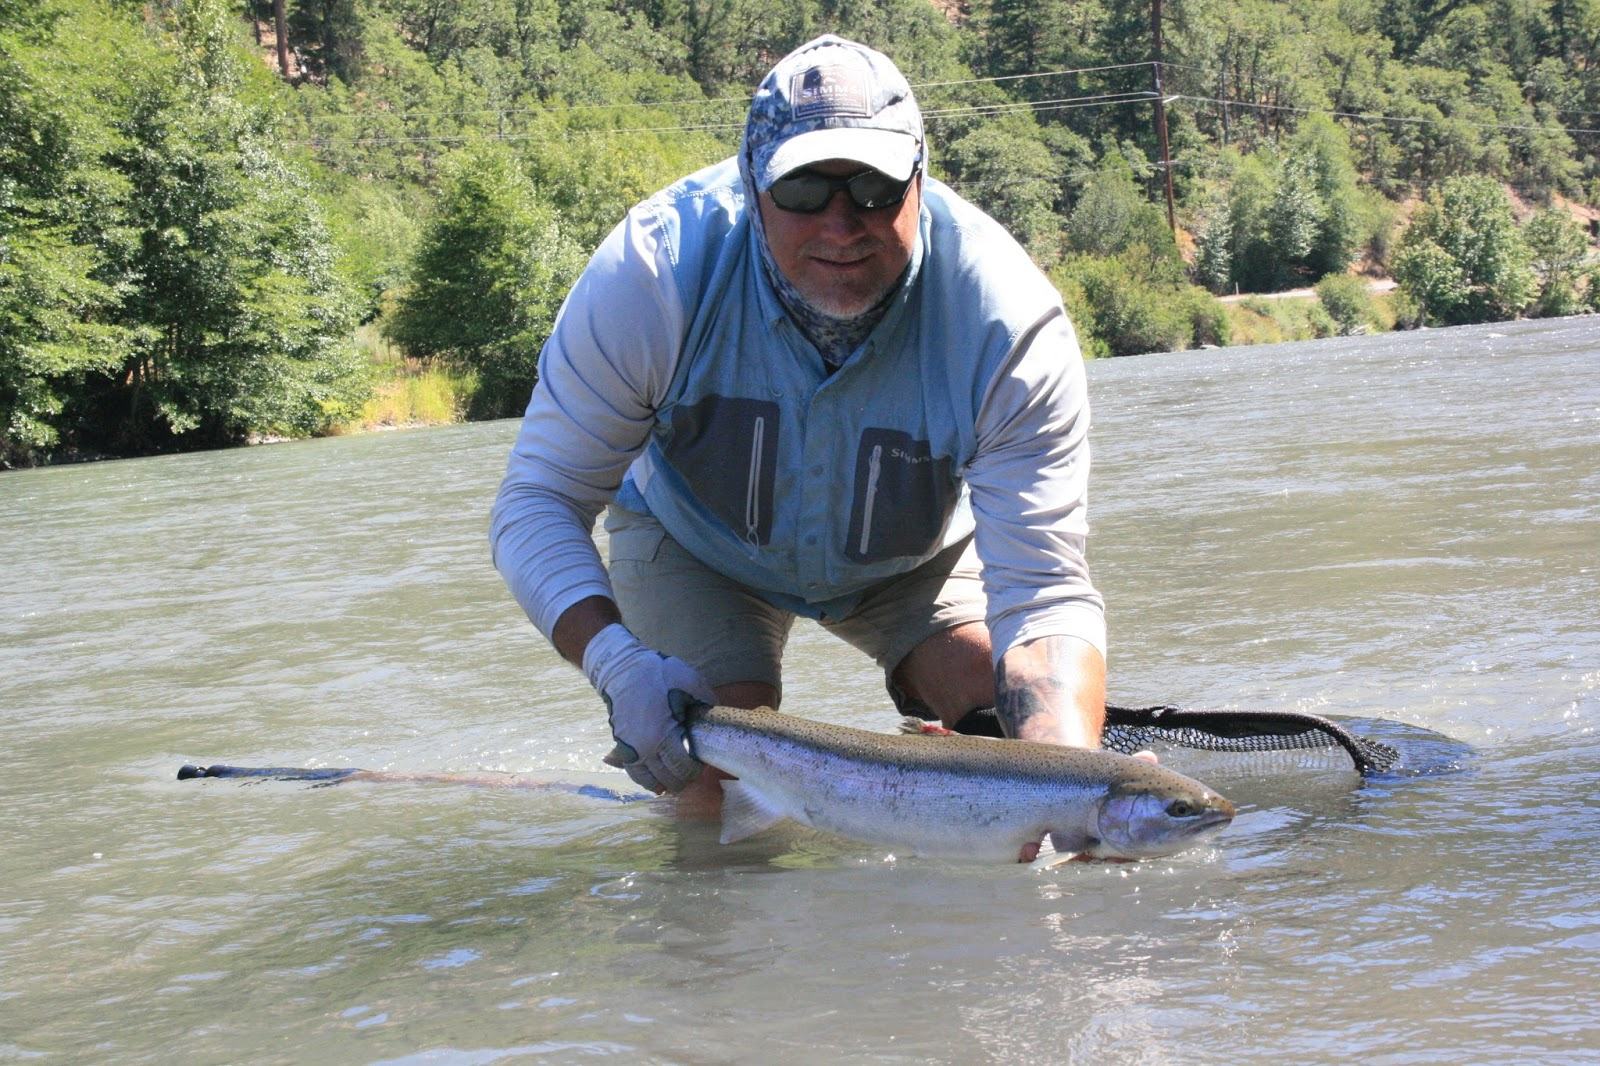 The evening hatch reports klickitat river report 7 24 15 for Klickitat river fishing report